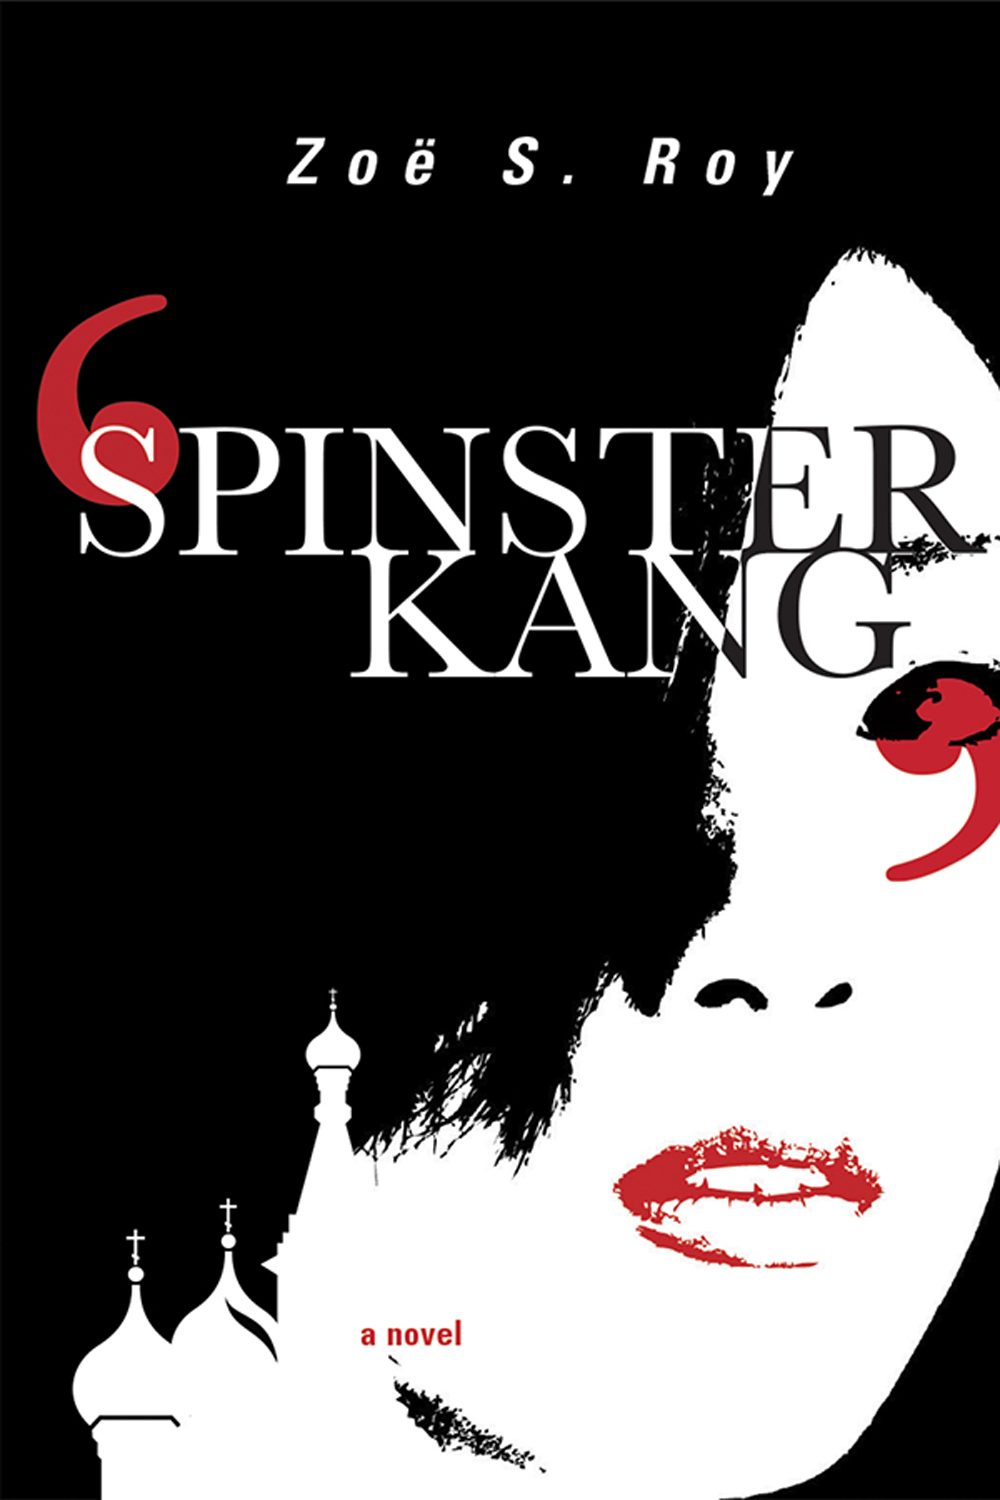 Spinster Kang